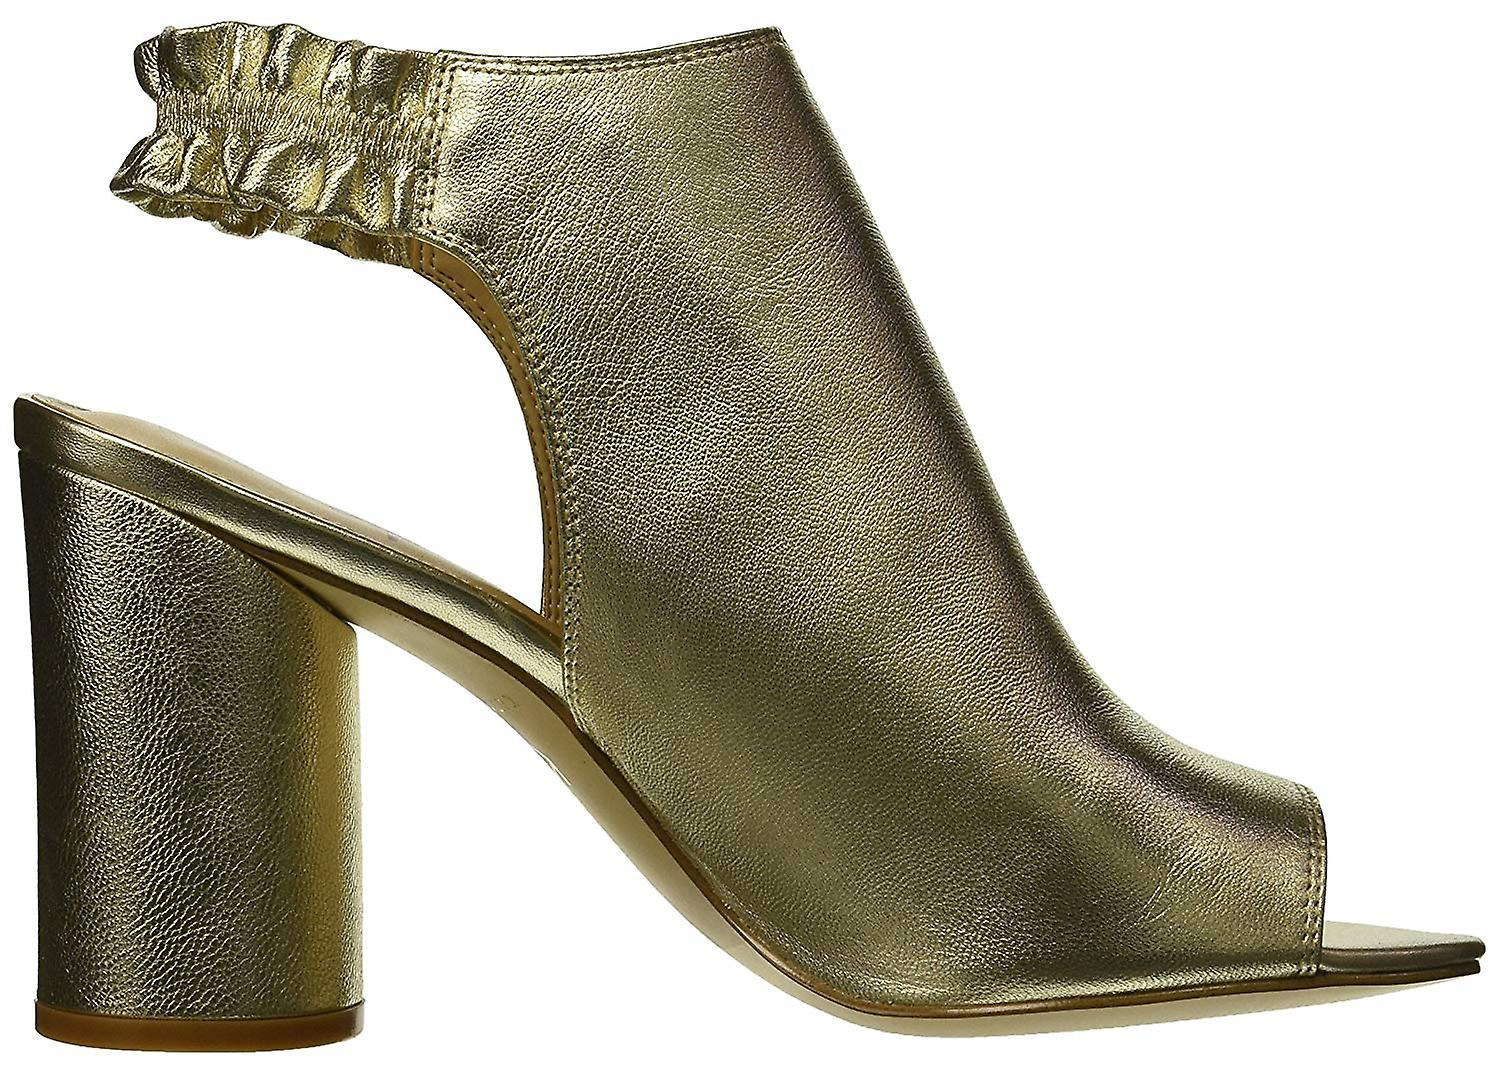 Katy Perry Frauen's Die Jocelyn-Tumbled Metallic Heeled Sandale